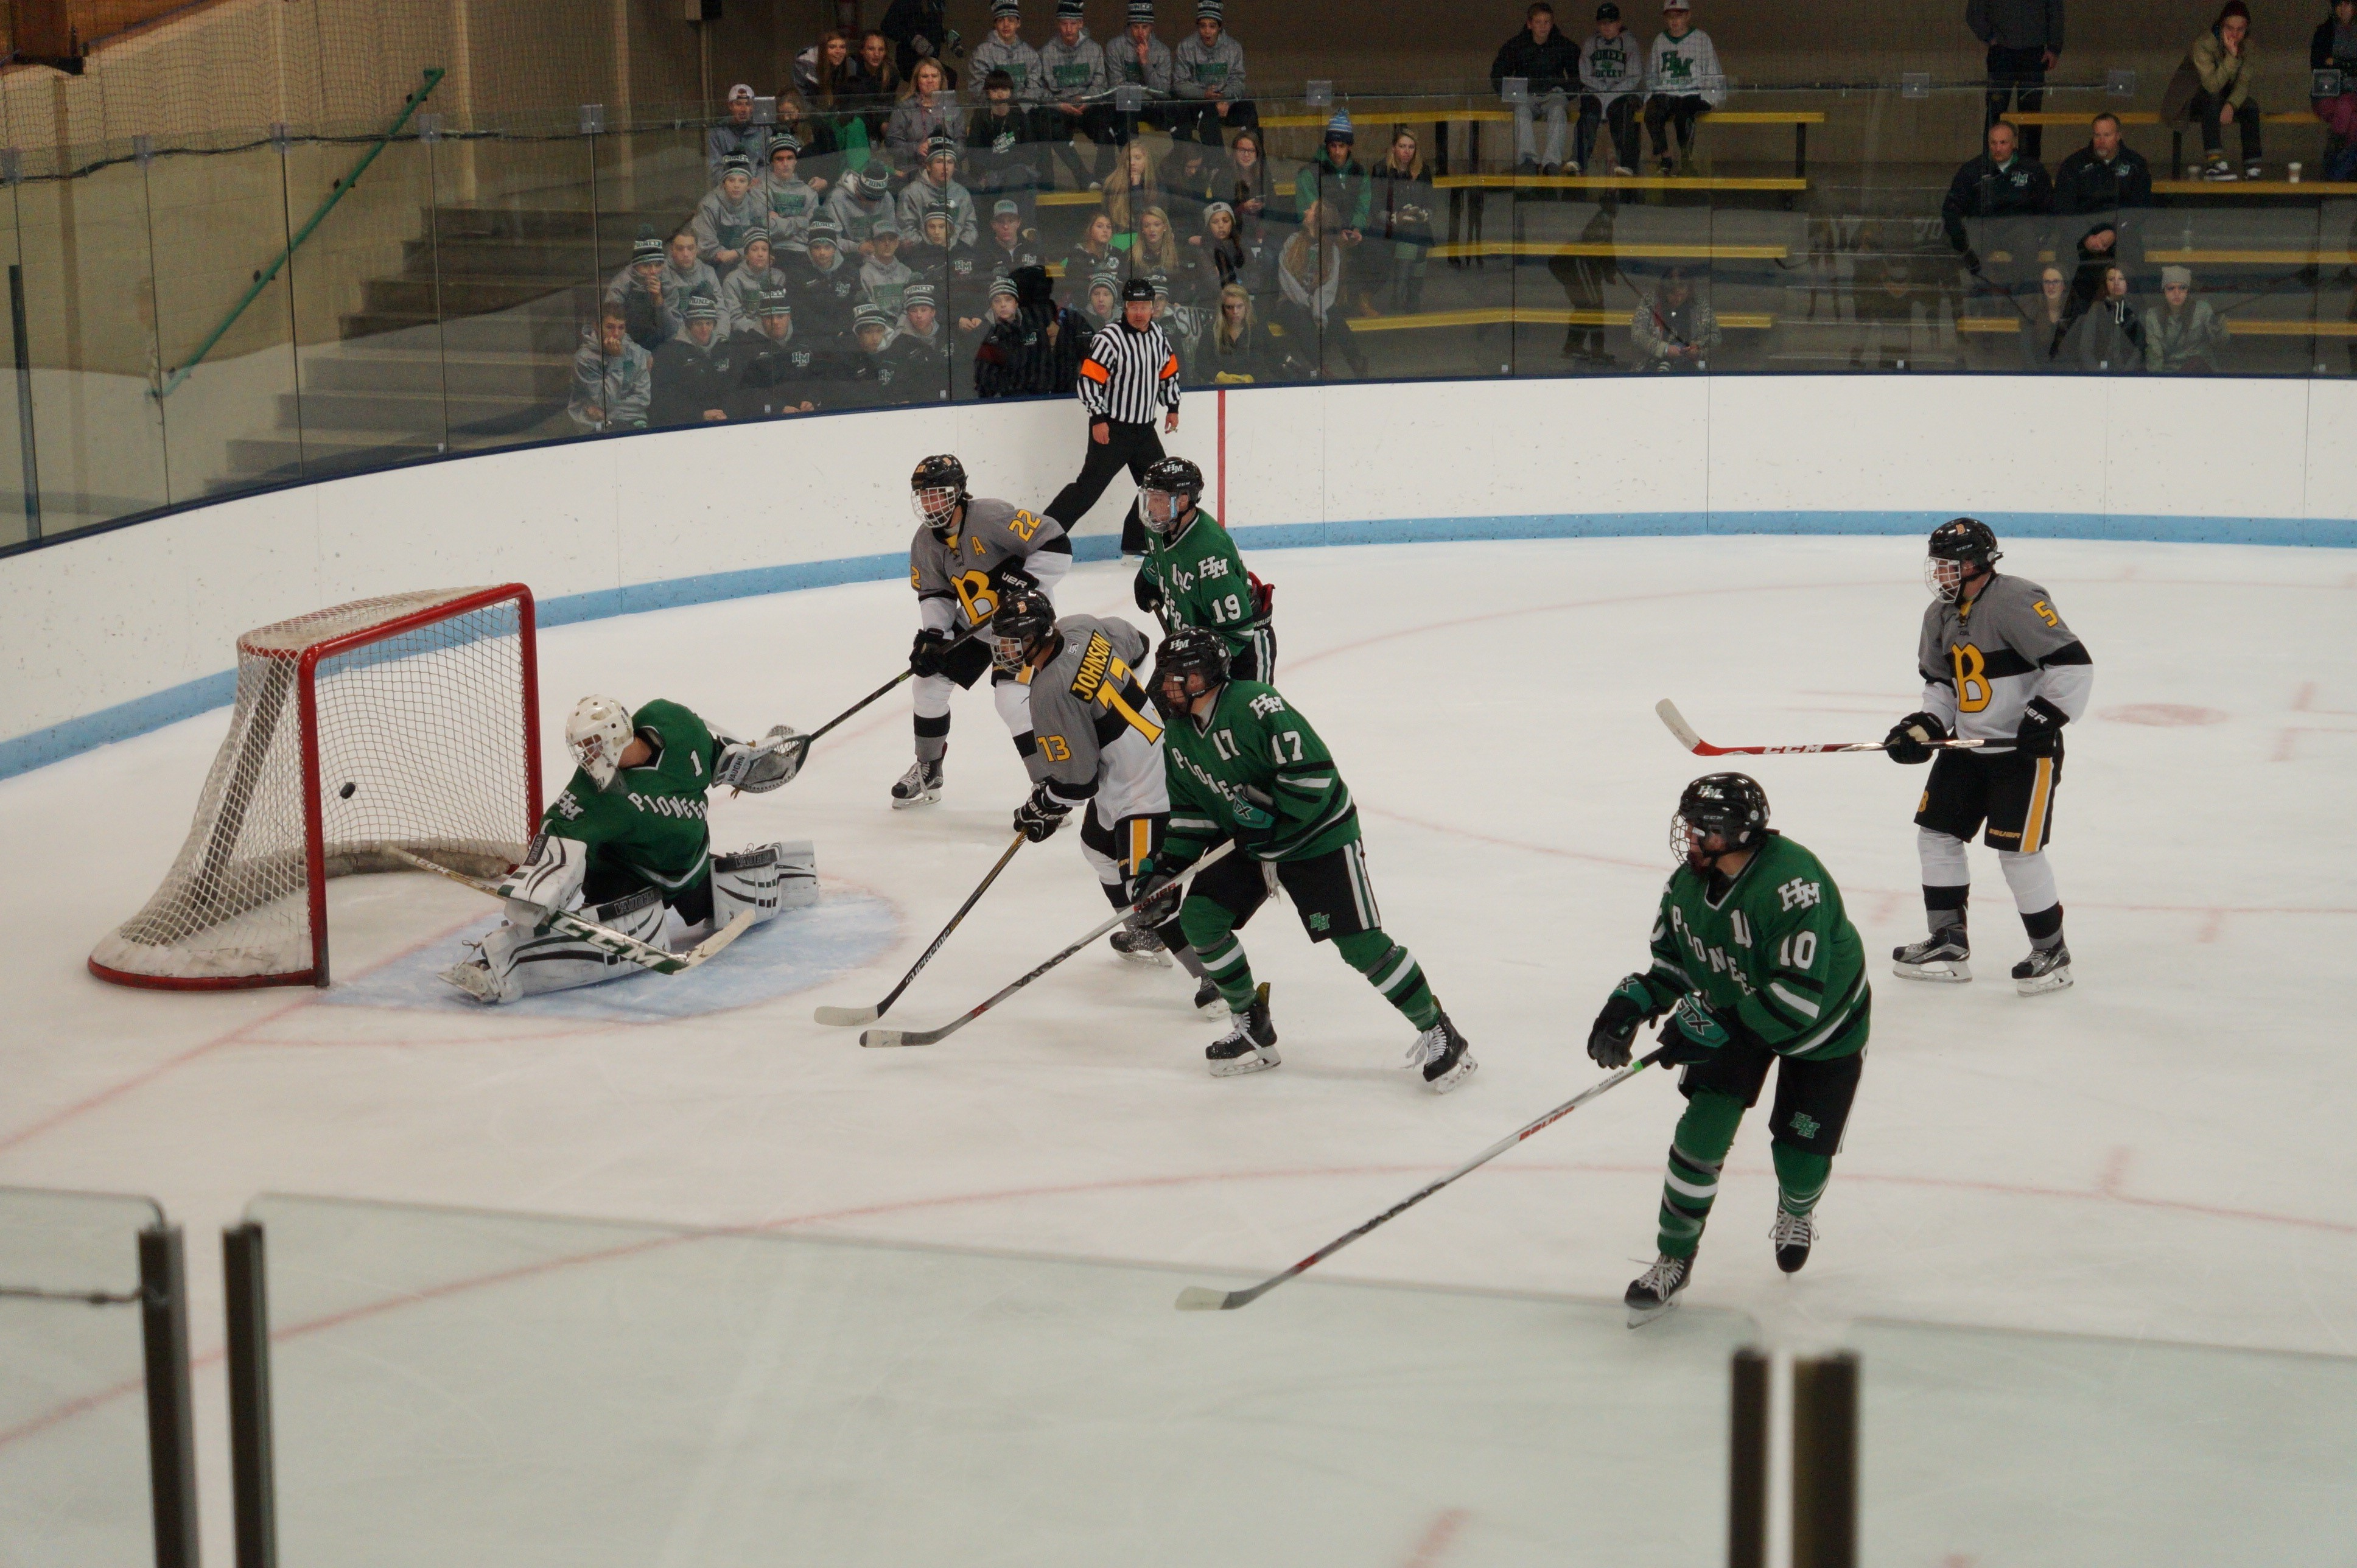 Burnsville (shown in a game against Hill-Murray earlier this season) took out top-seeded St. Thomas Academy 7-1 in the Section 3-2A playoffs. Credit: Peter Odney.